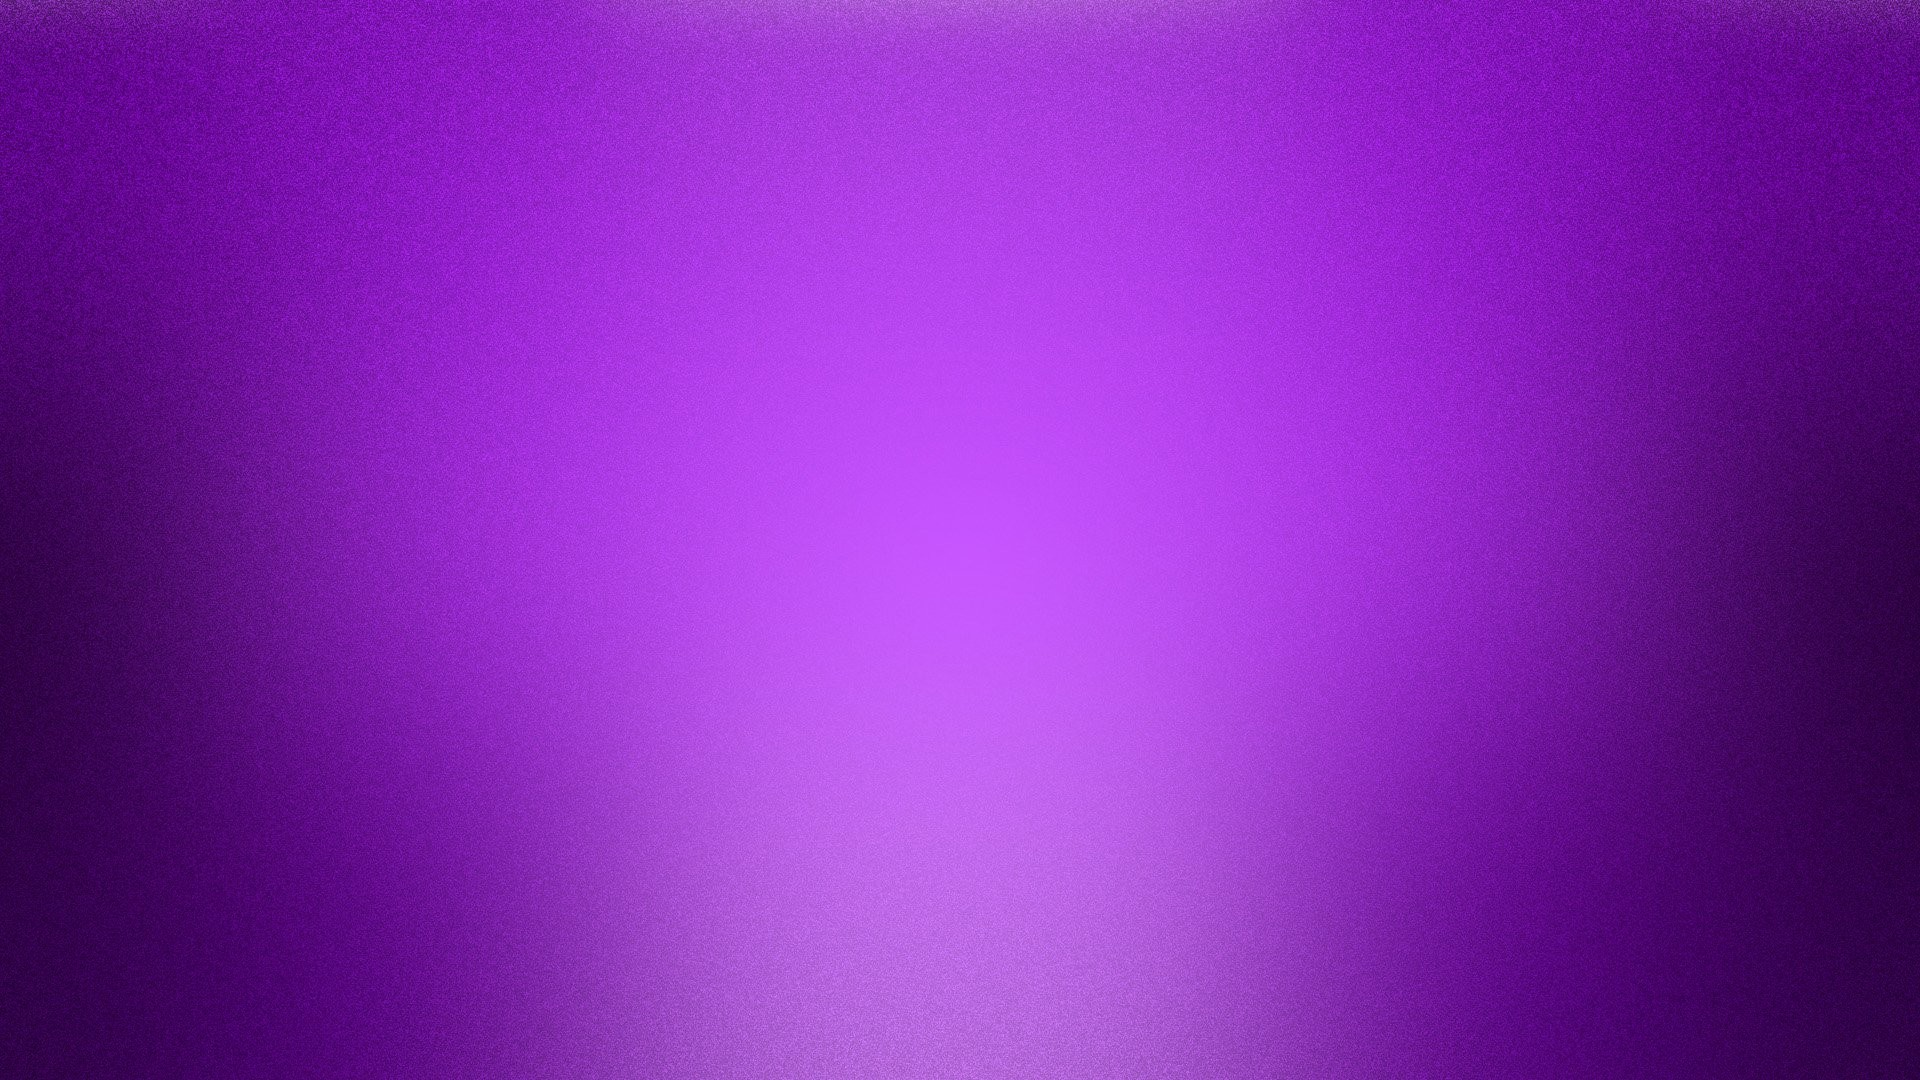 Purple Wallpaper For Phones: Purple Background ·① Download Free Stunning Wallpapers For